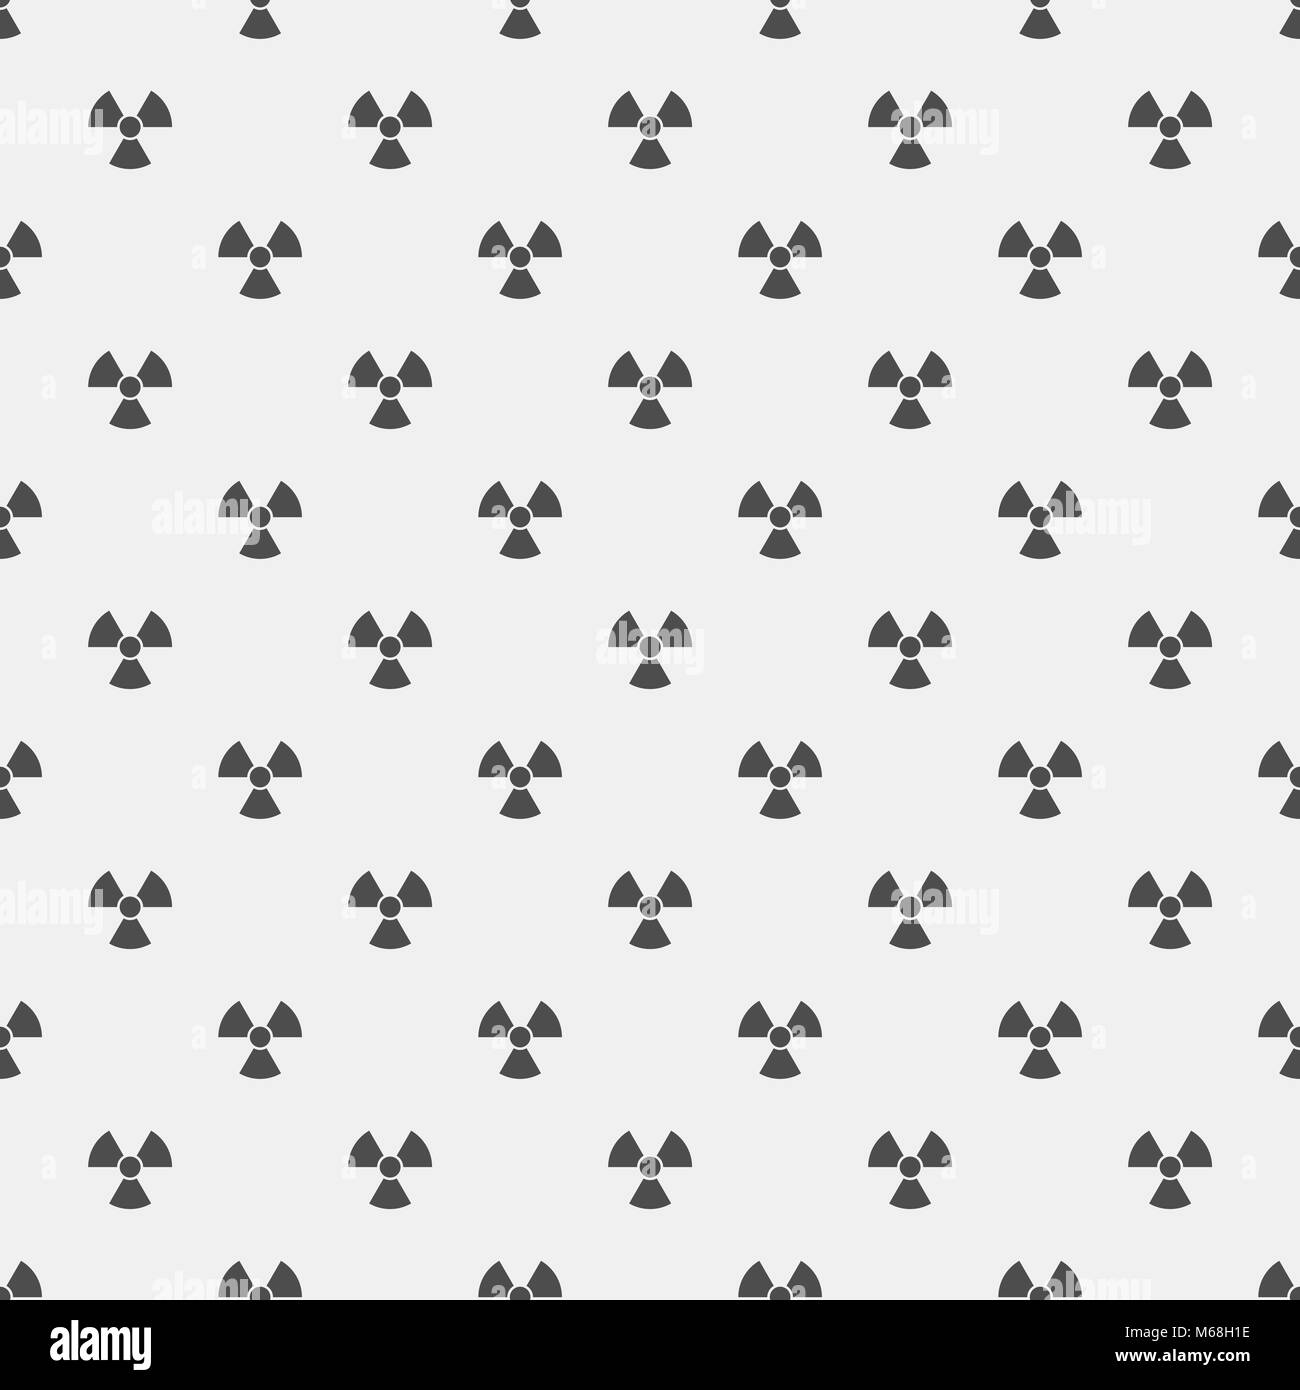 Abstract pattern. Black radiation signs on a white background. Irradiation. Dangerous area. Vector illustration - Stock Image